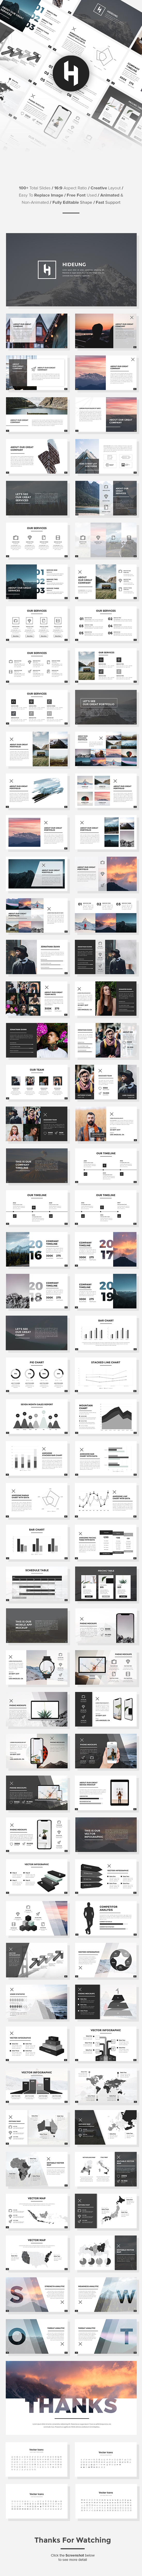 GraphicRiver Hideung Pitch Deck Keynote Template 21076277